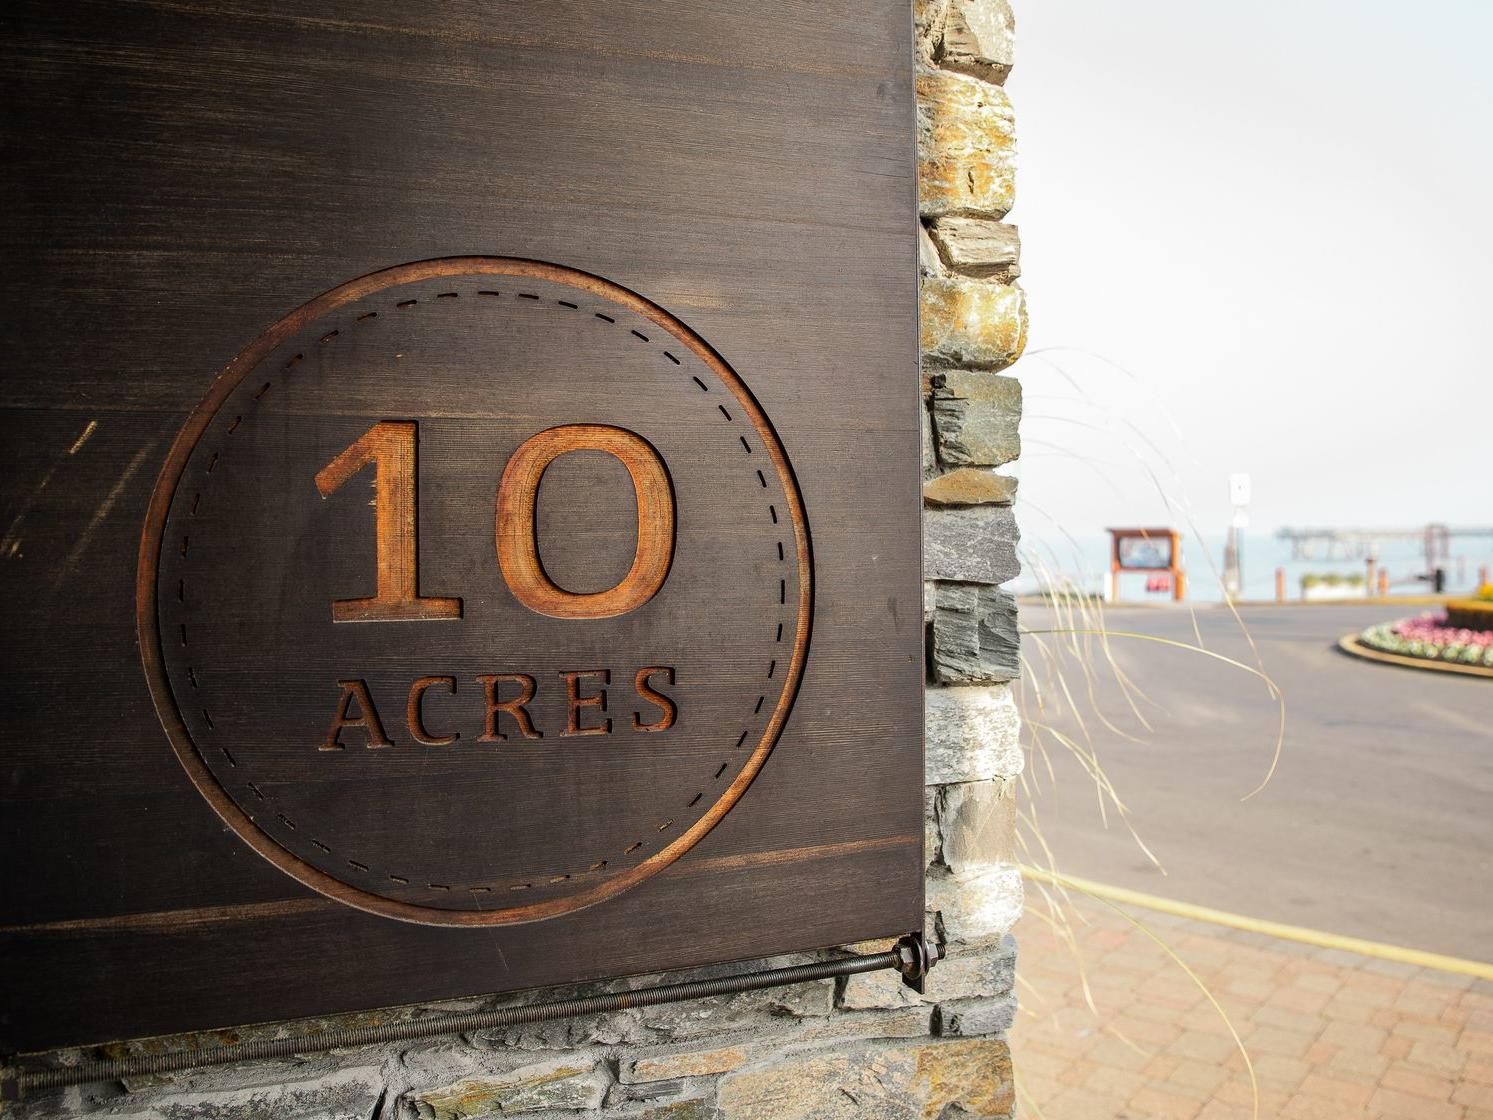 10 acres restaurant logo